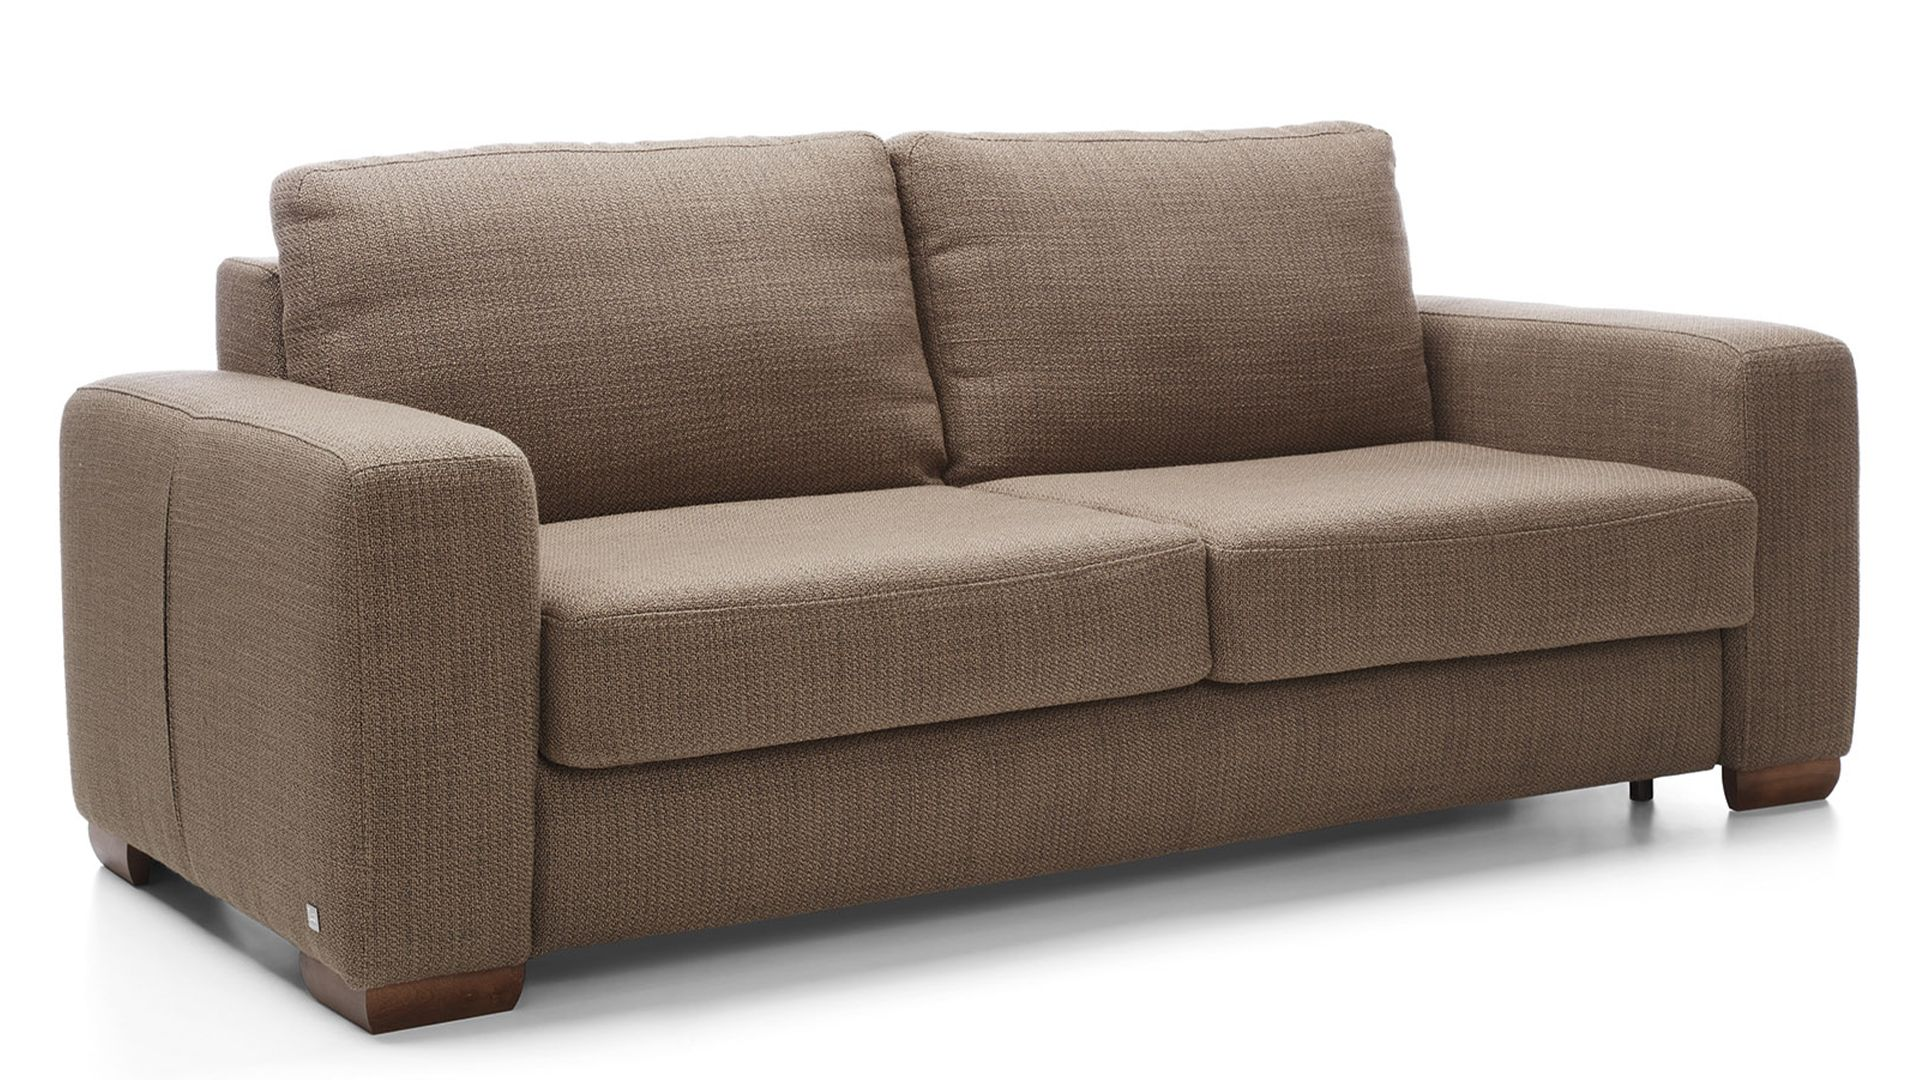 Sofa with sleeping function Space 160